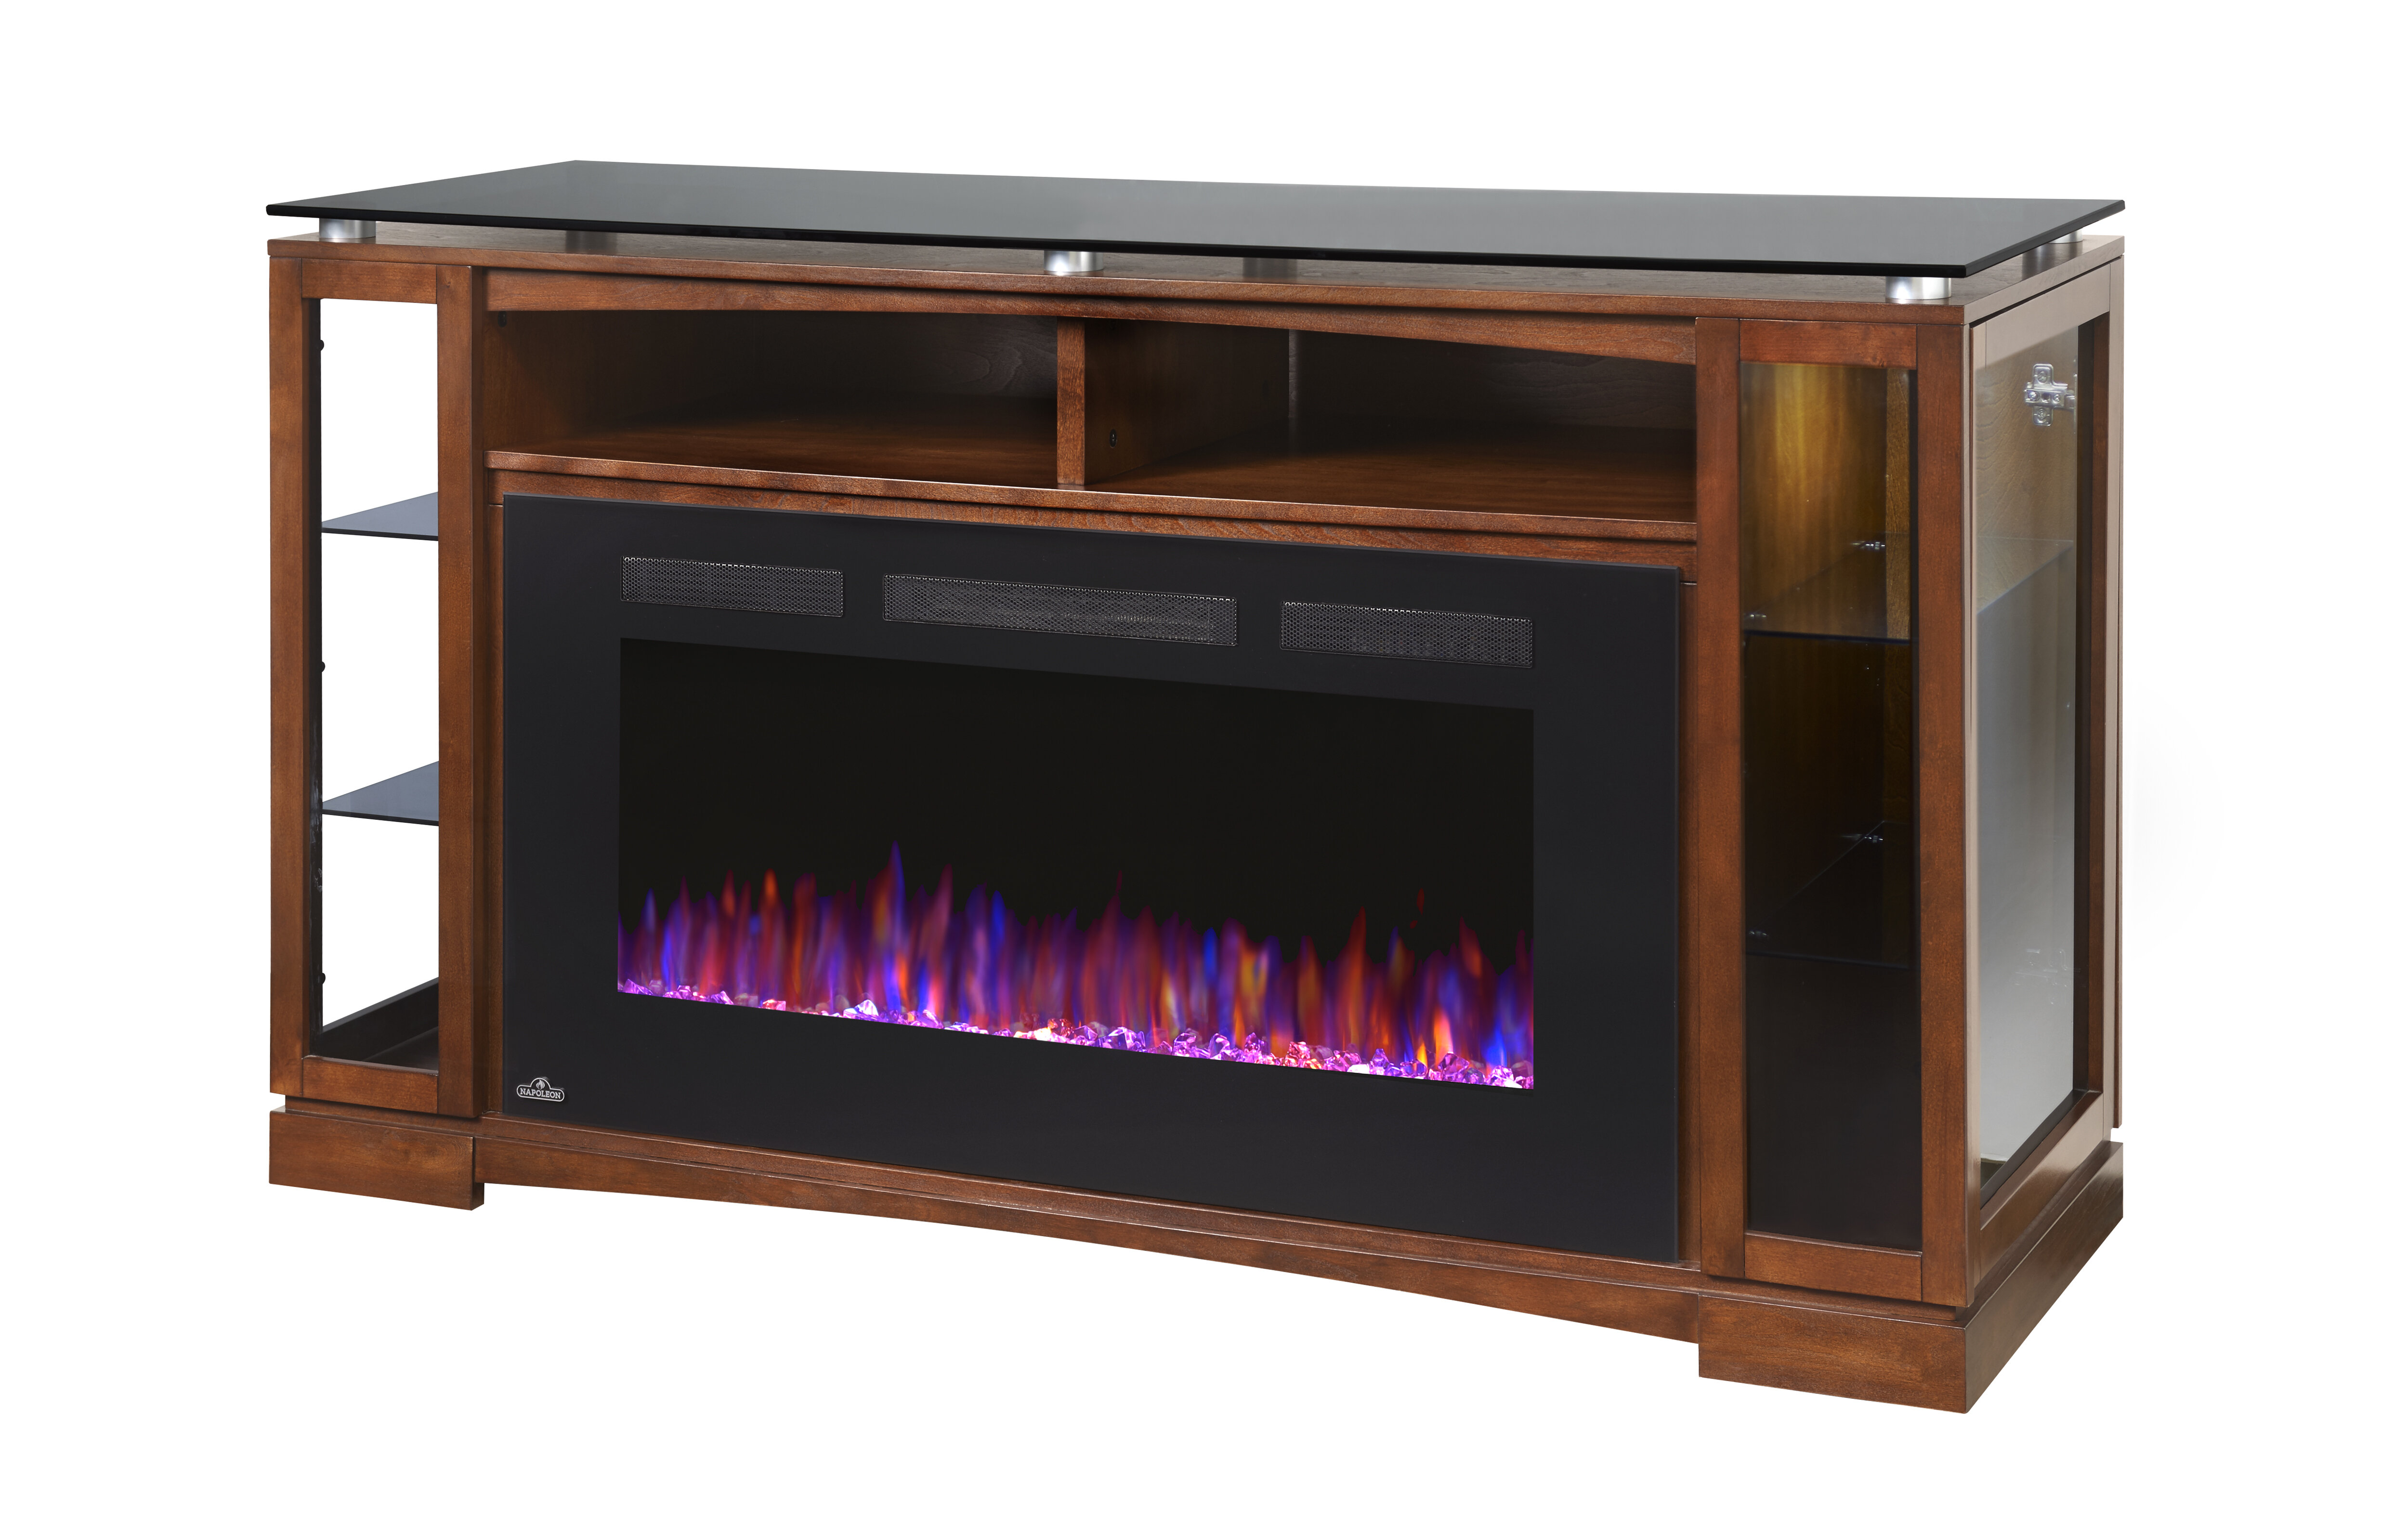 mantels infrared surround fireplace wood of fireplaces bookshelves living faux marble fieldstone room electric full quartz company stacked shelves york mantle stone fire with mantel size cheap